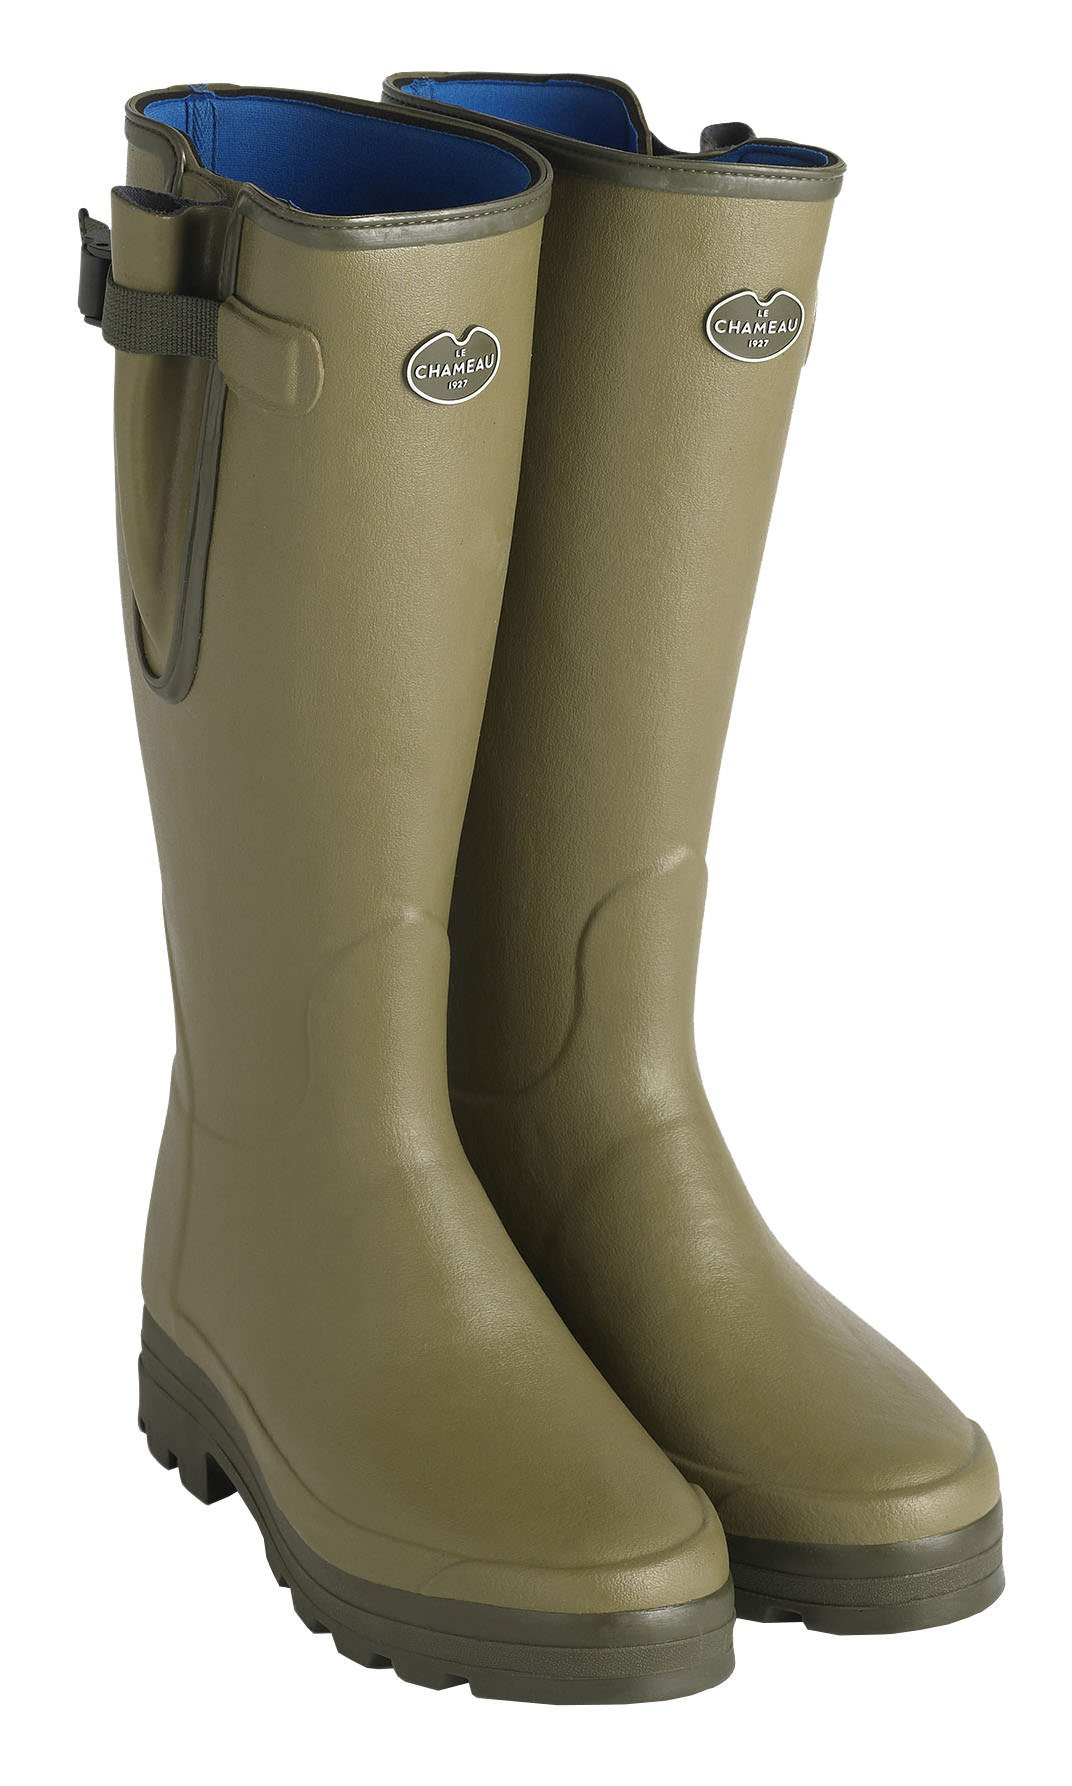 LE CHAMEAU 1927 Men's VIERZONORD XL Neoprene Lined Boot - US 10